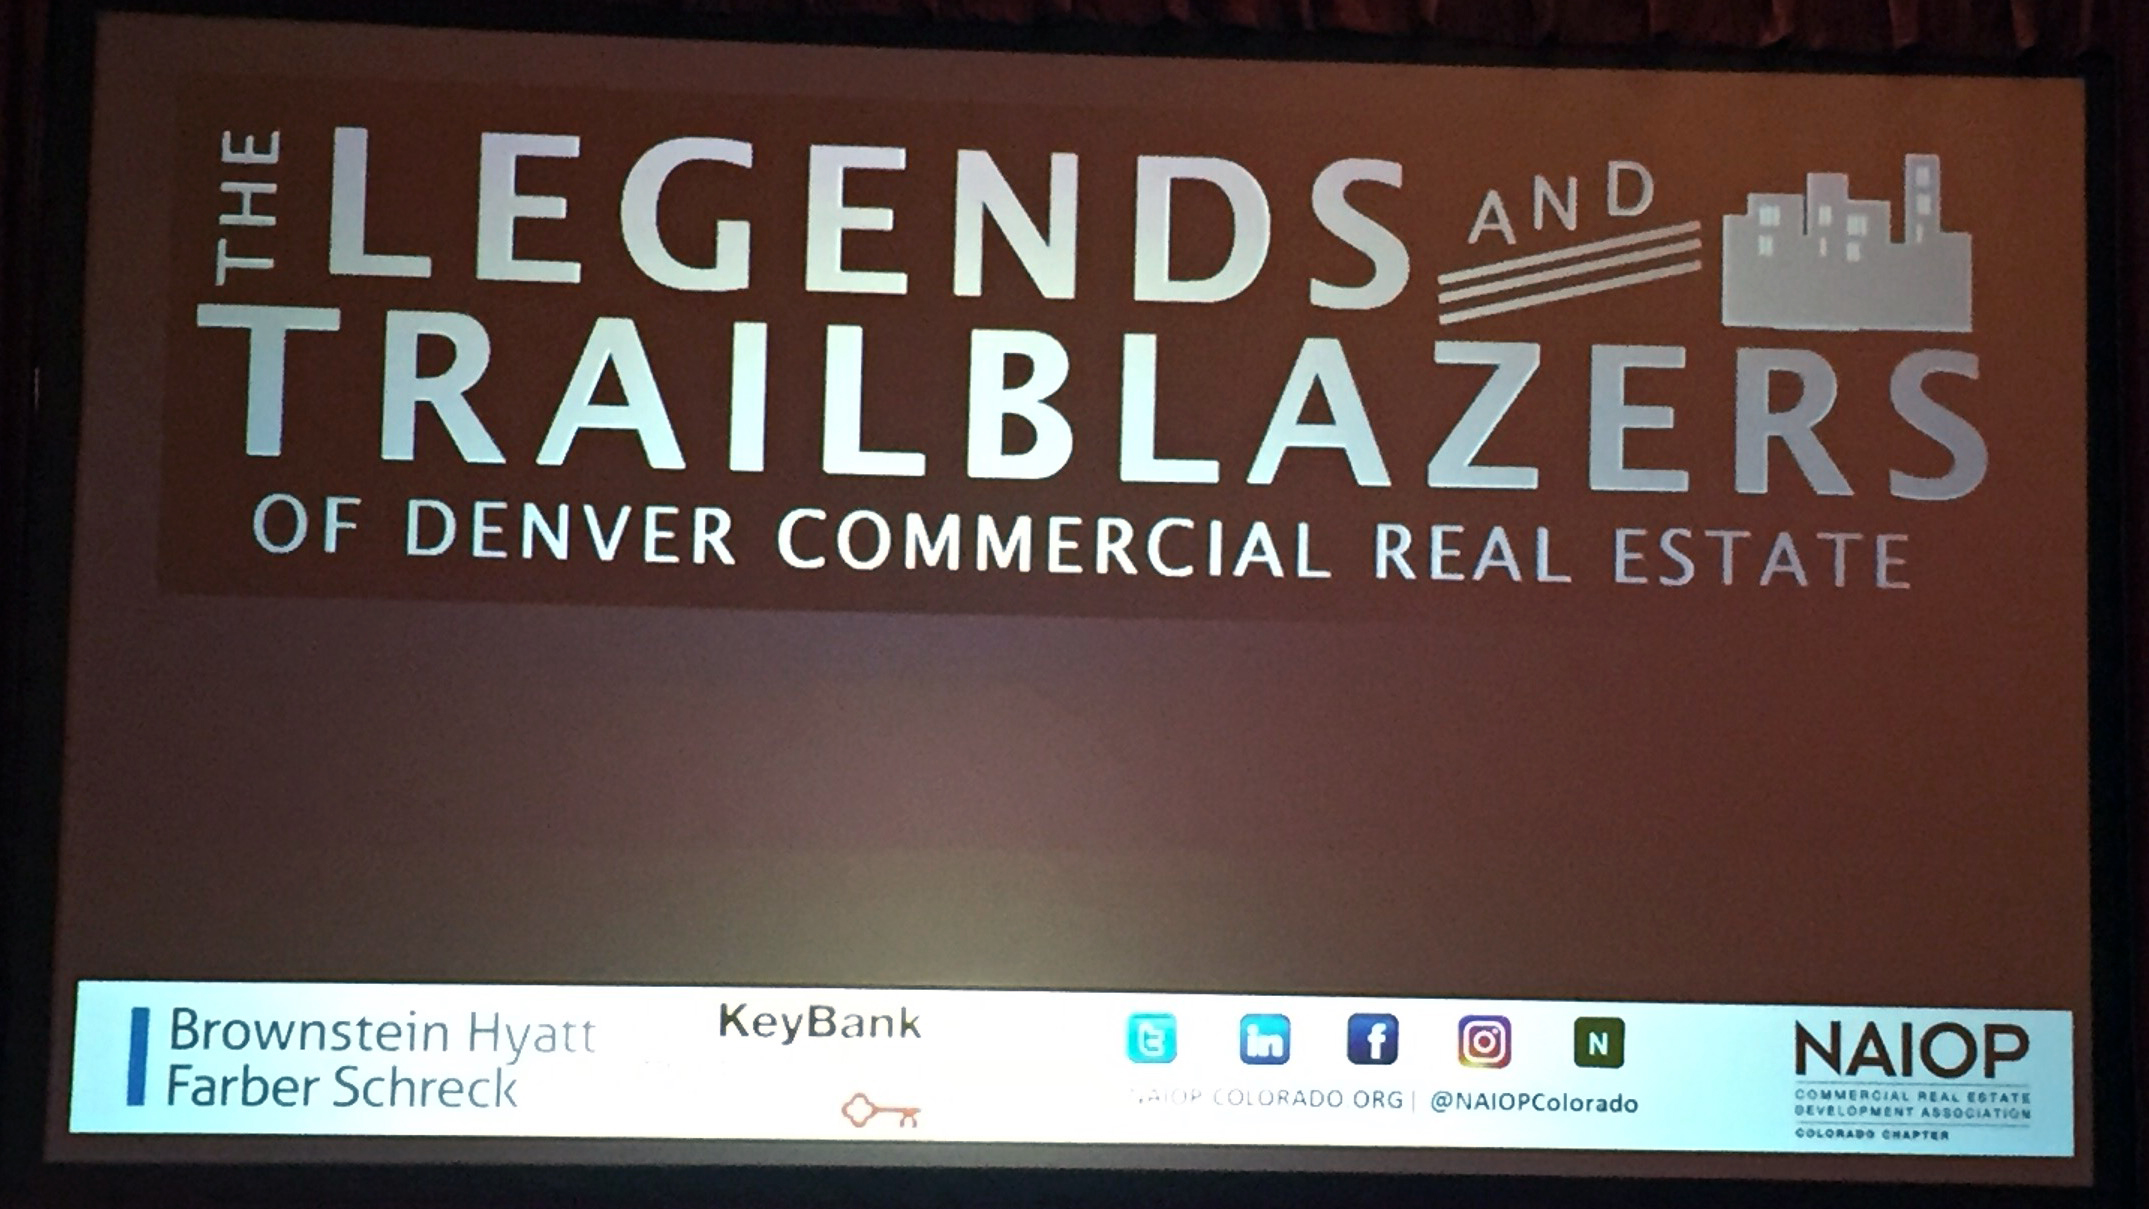 NAIOP Colorado_Legends and Trailblazers_Denver CO